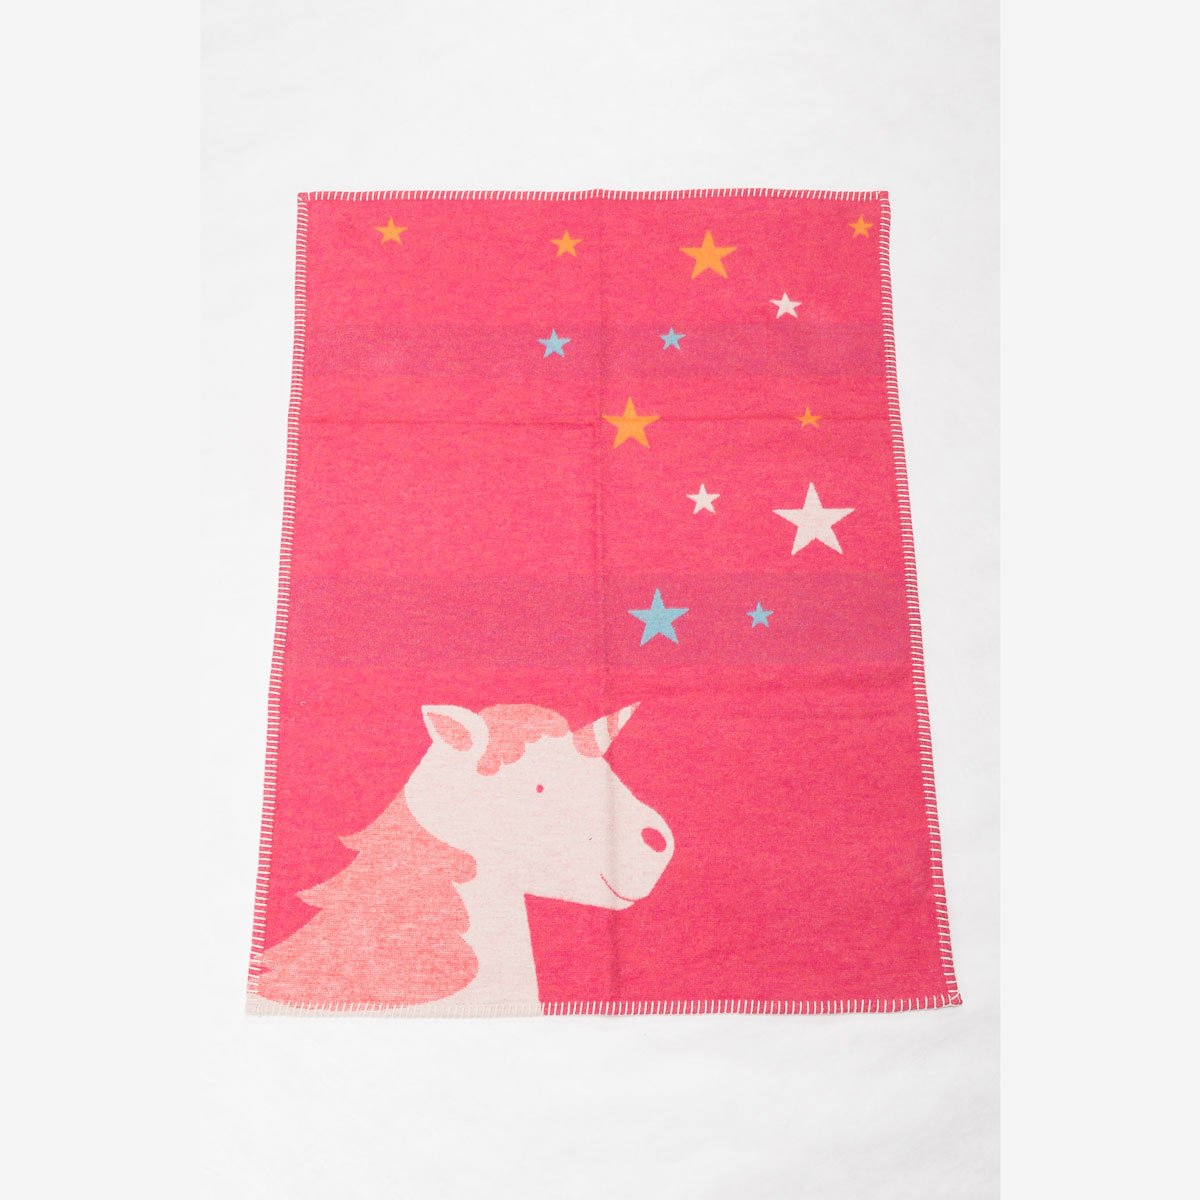 DaviDFussenegger Lili Unicorn 66361279 Baby and Children's Blanket 7 Multi-Coloured